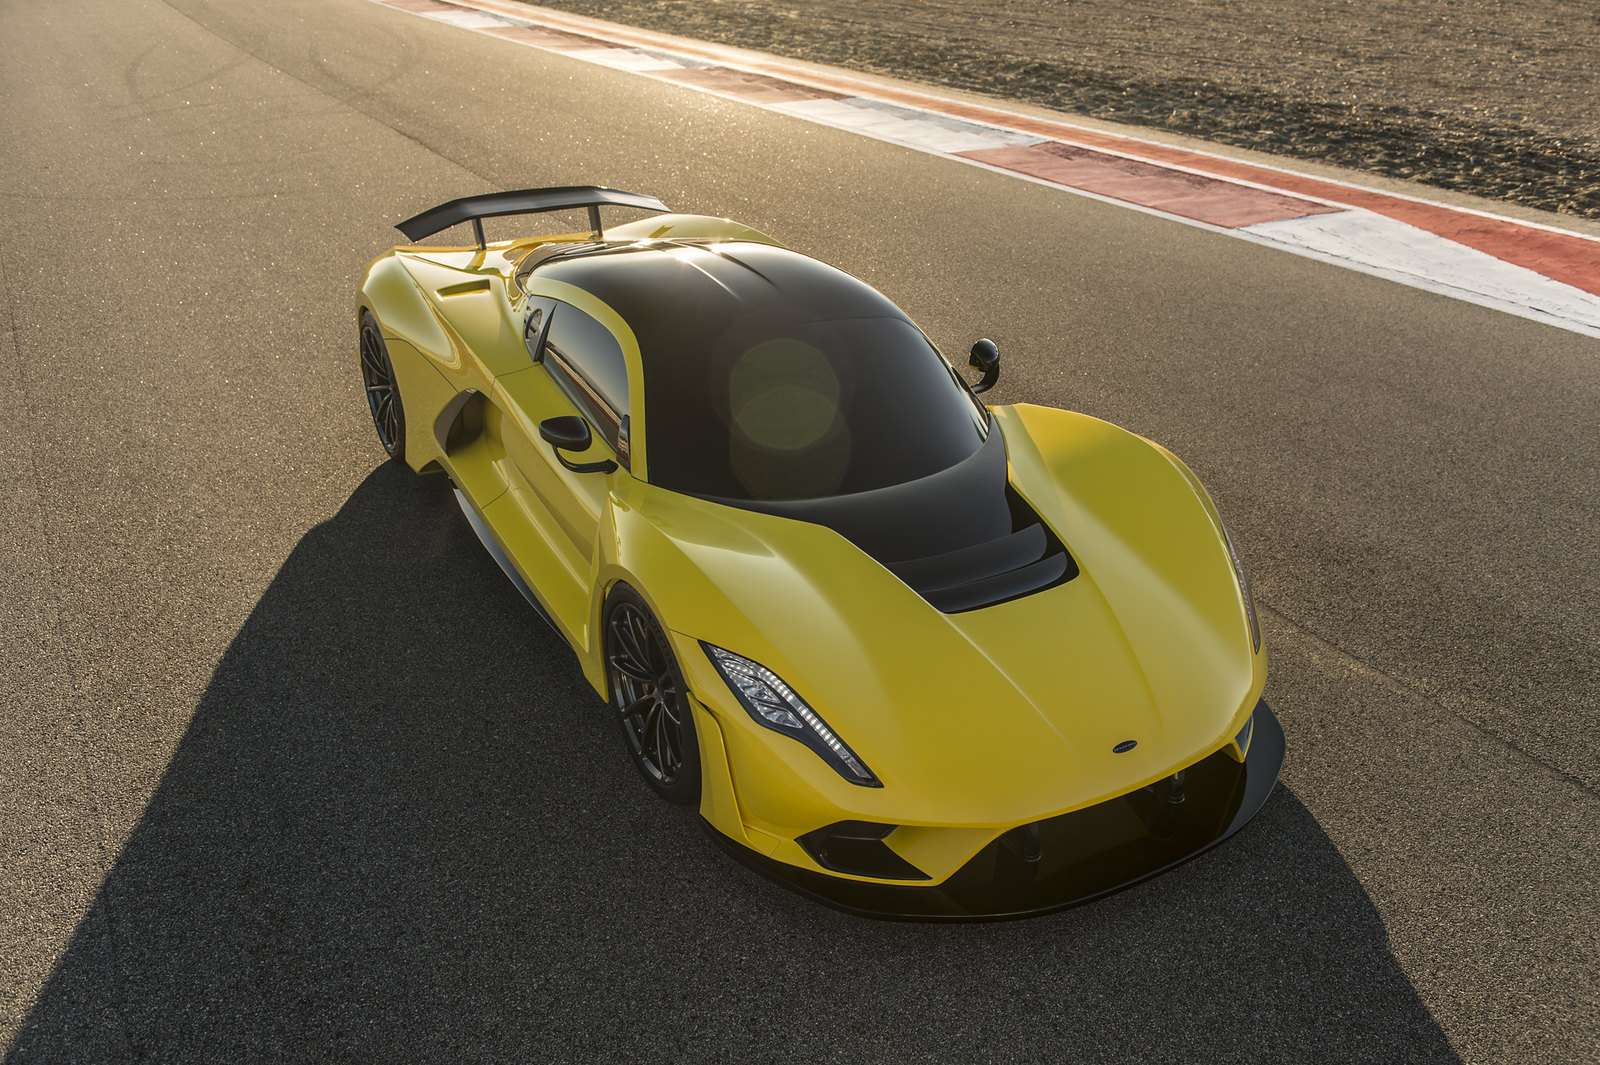 Hennessey Venom F5 makes its debut at SEMA